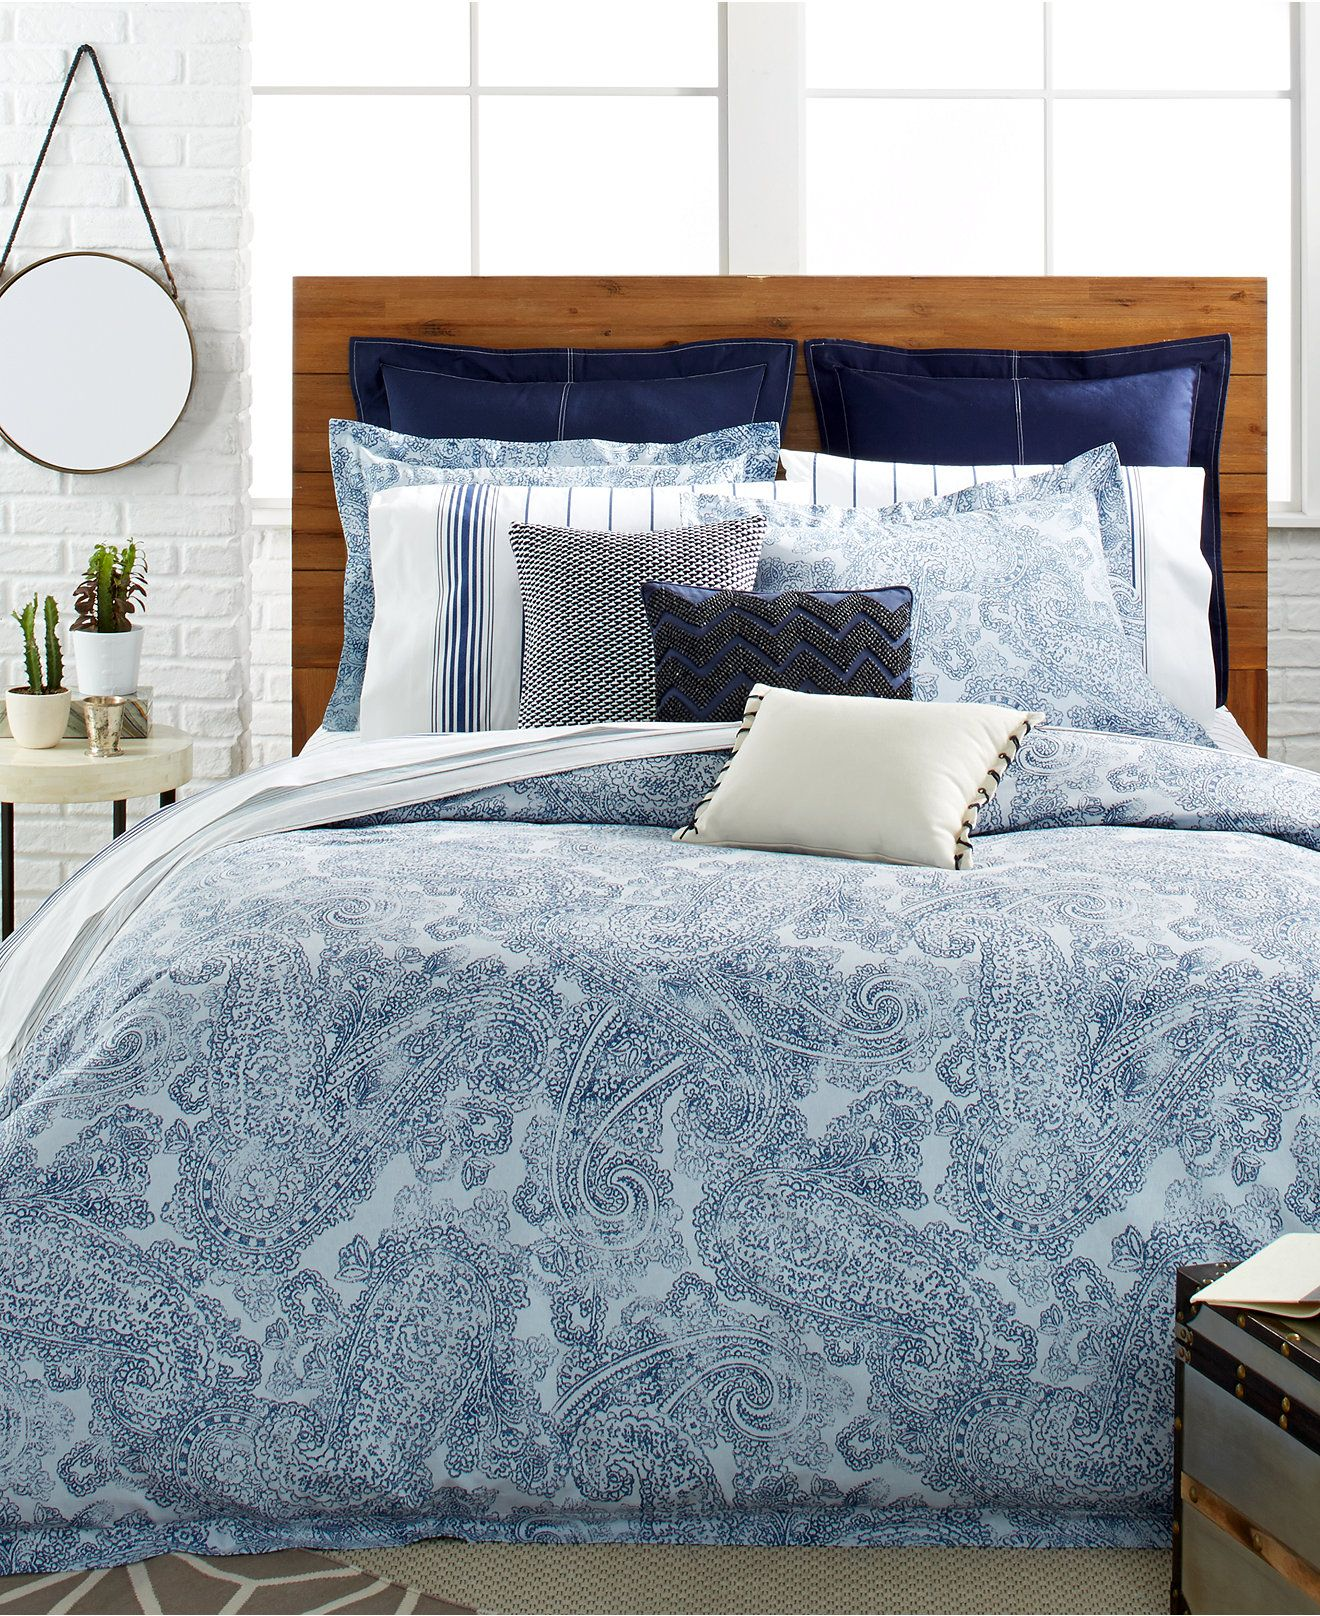 Tommy Hilfiger Canyon Paisley Comforter And Duvet Cover